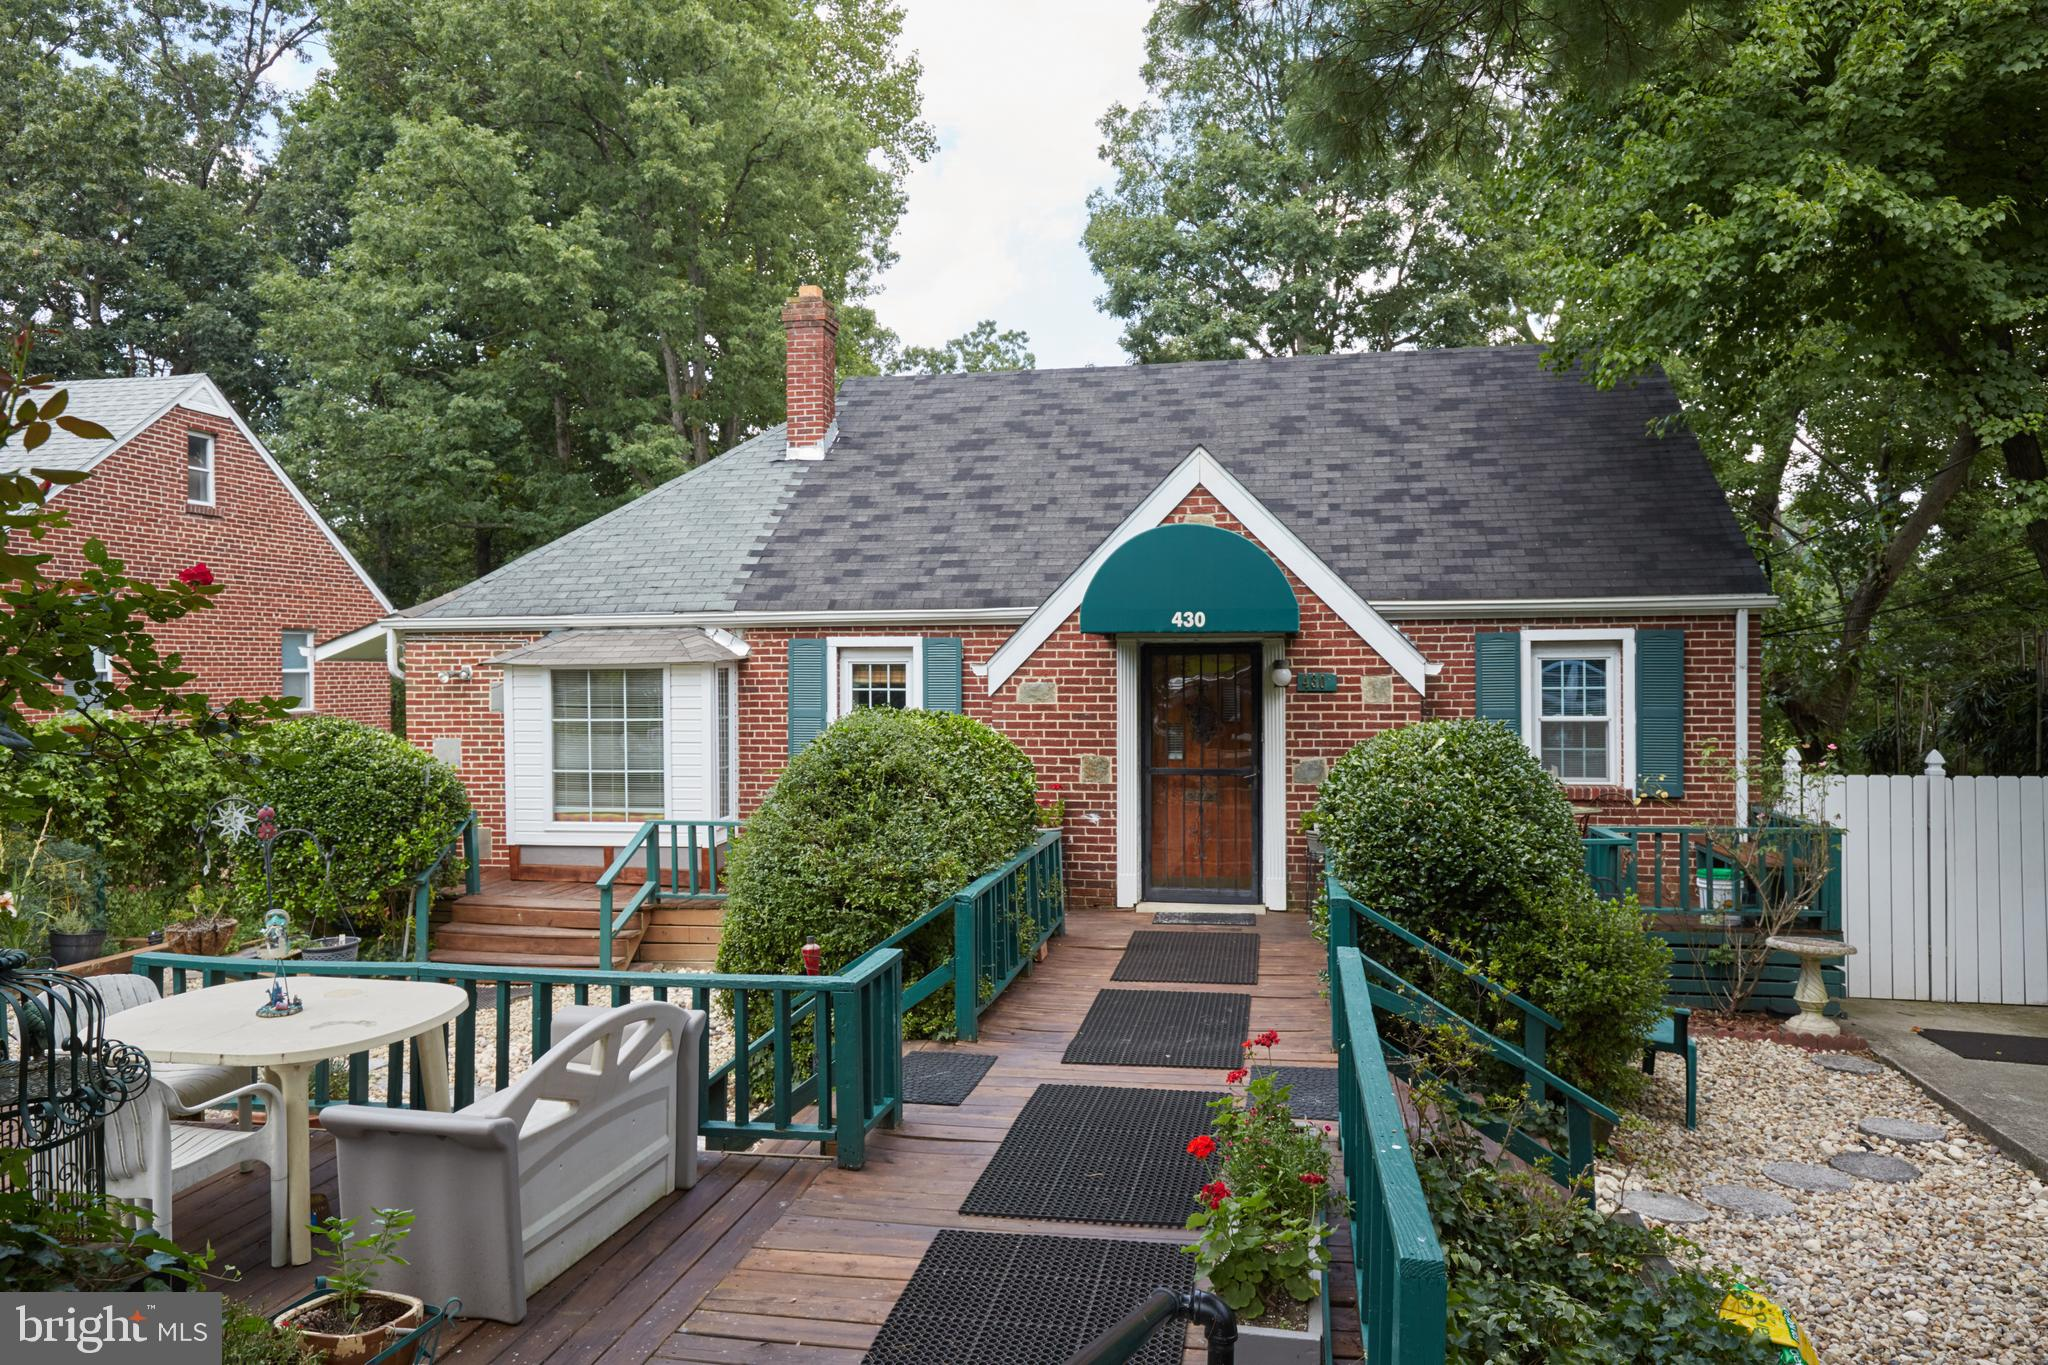 430 LINCOLN AVENUE, TAKOMA PARK, MD 20912